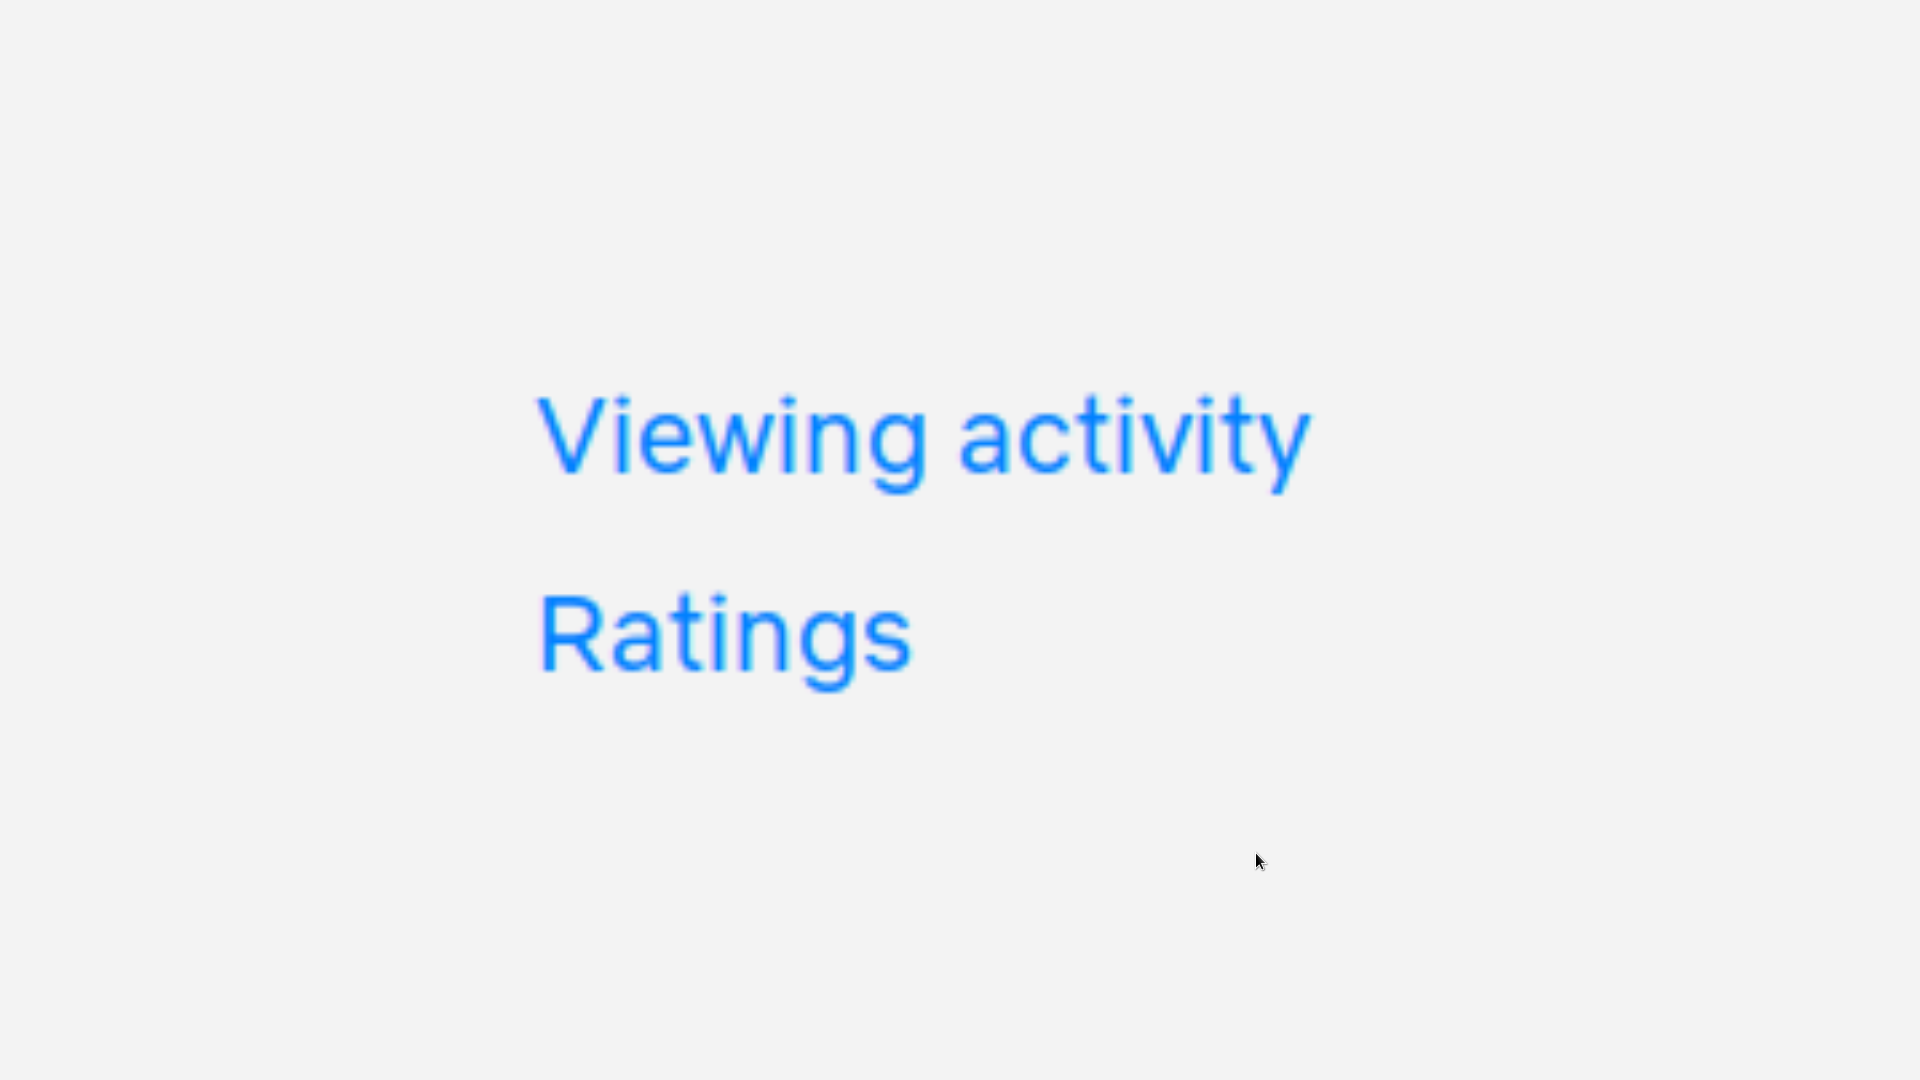 How to Clear Viewing Activity on Netflix? #keefto